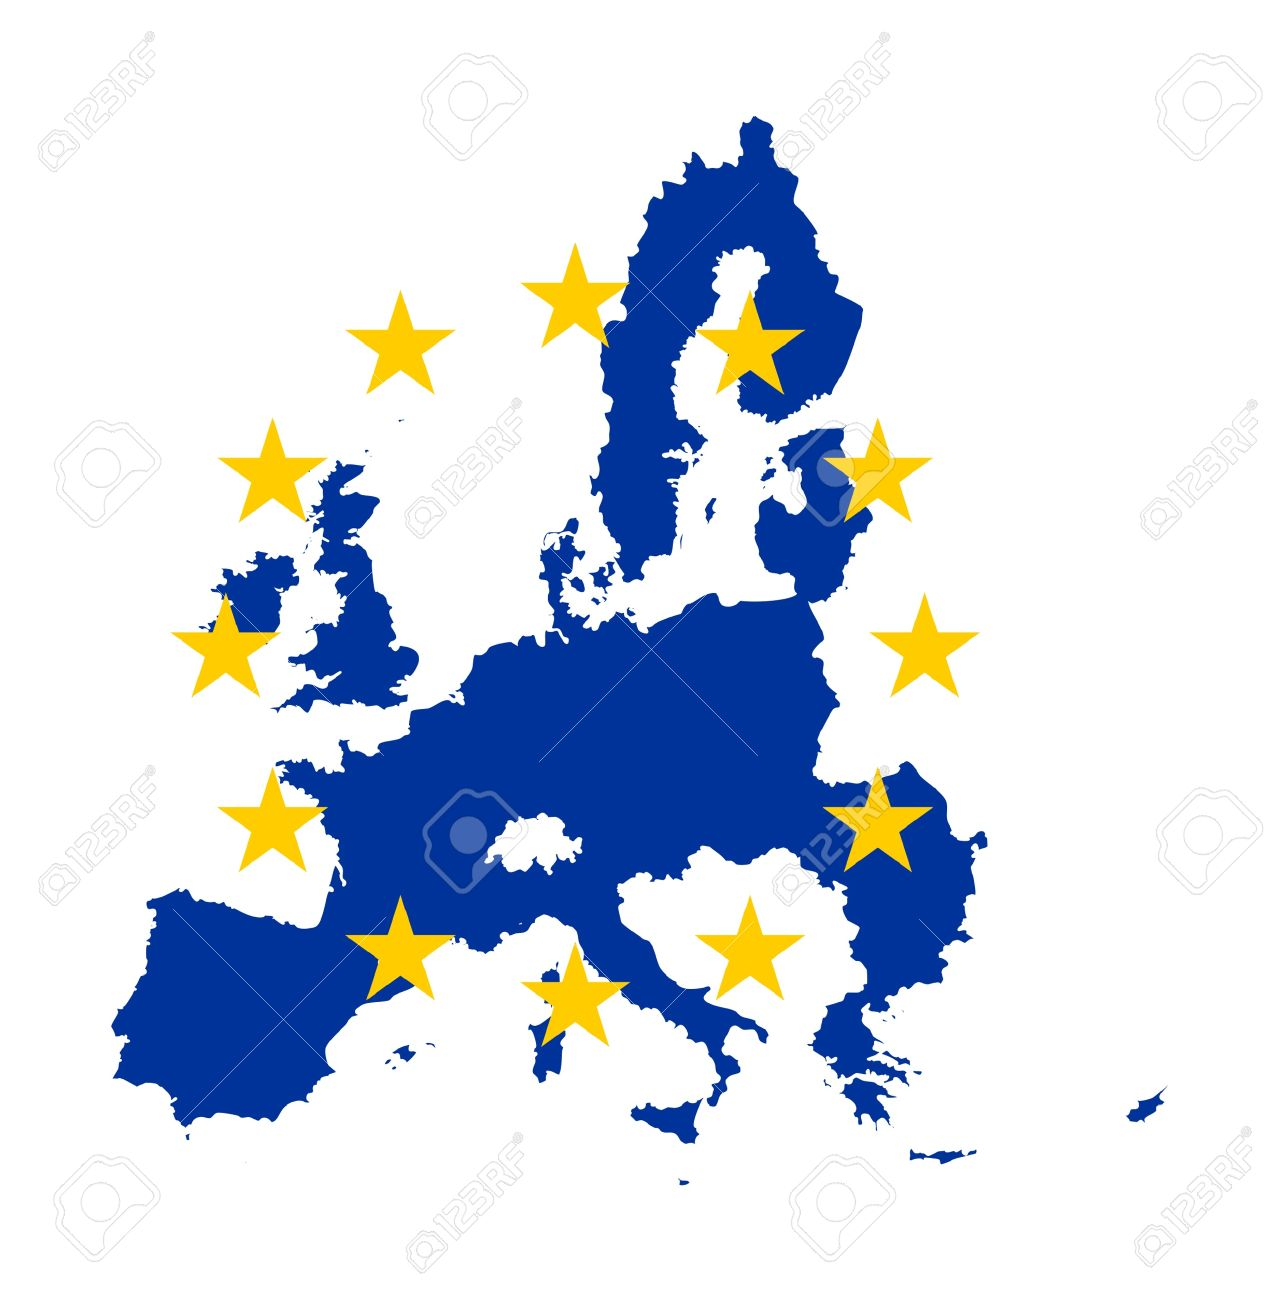 Illustration of European Union flag on map of continent; isolated on white background. - 9320570